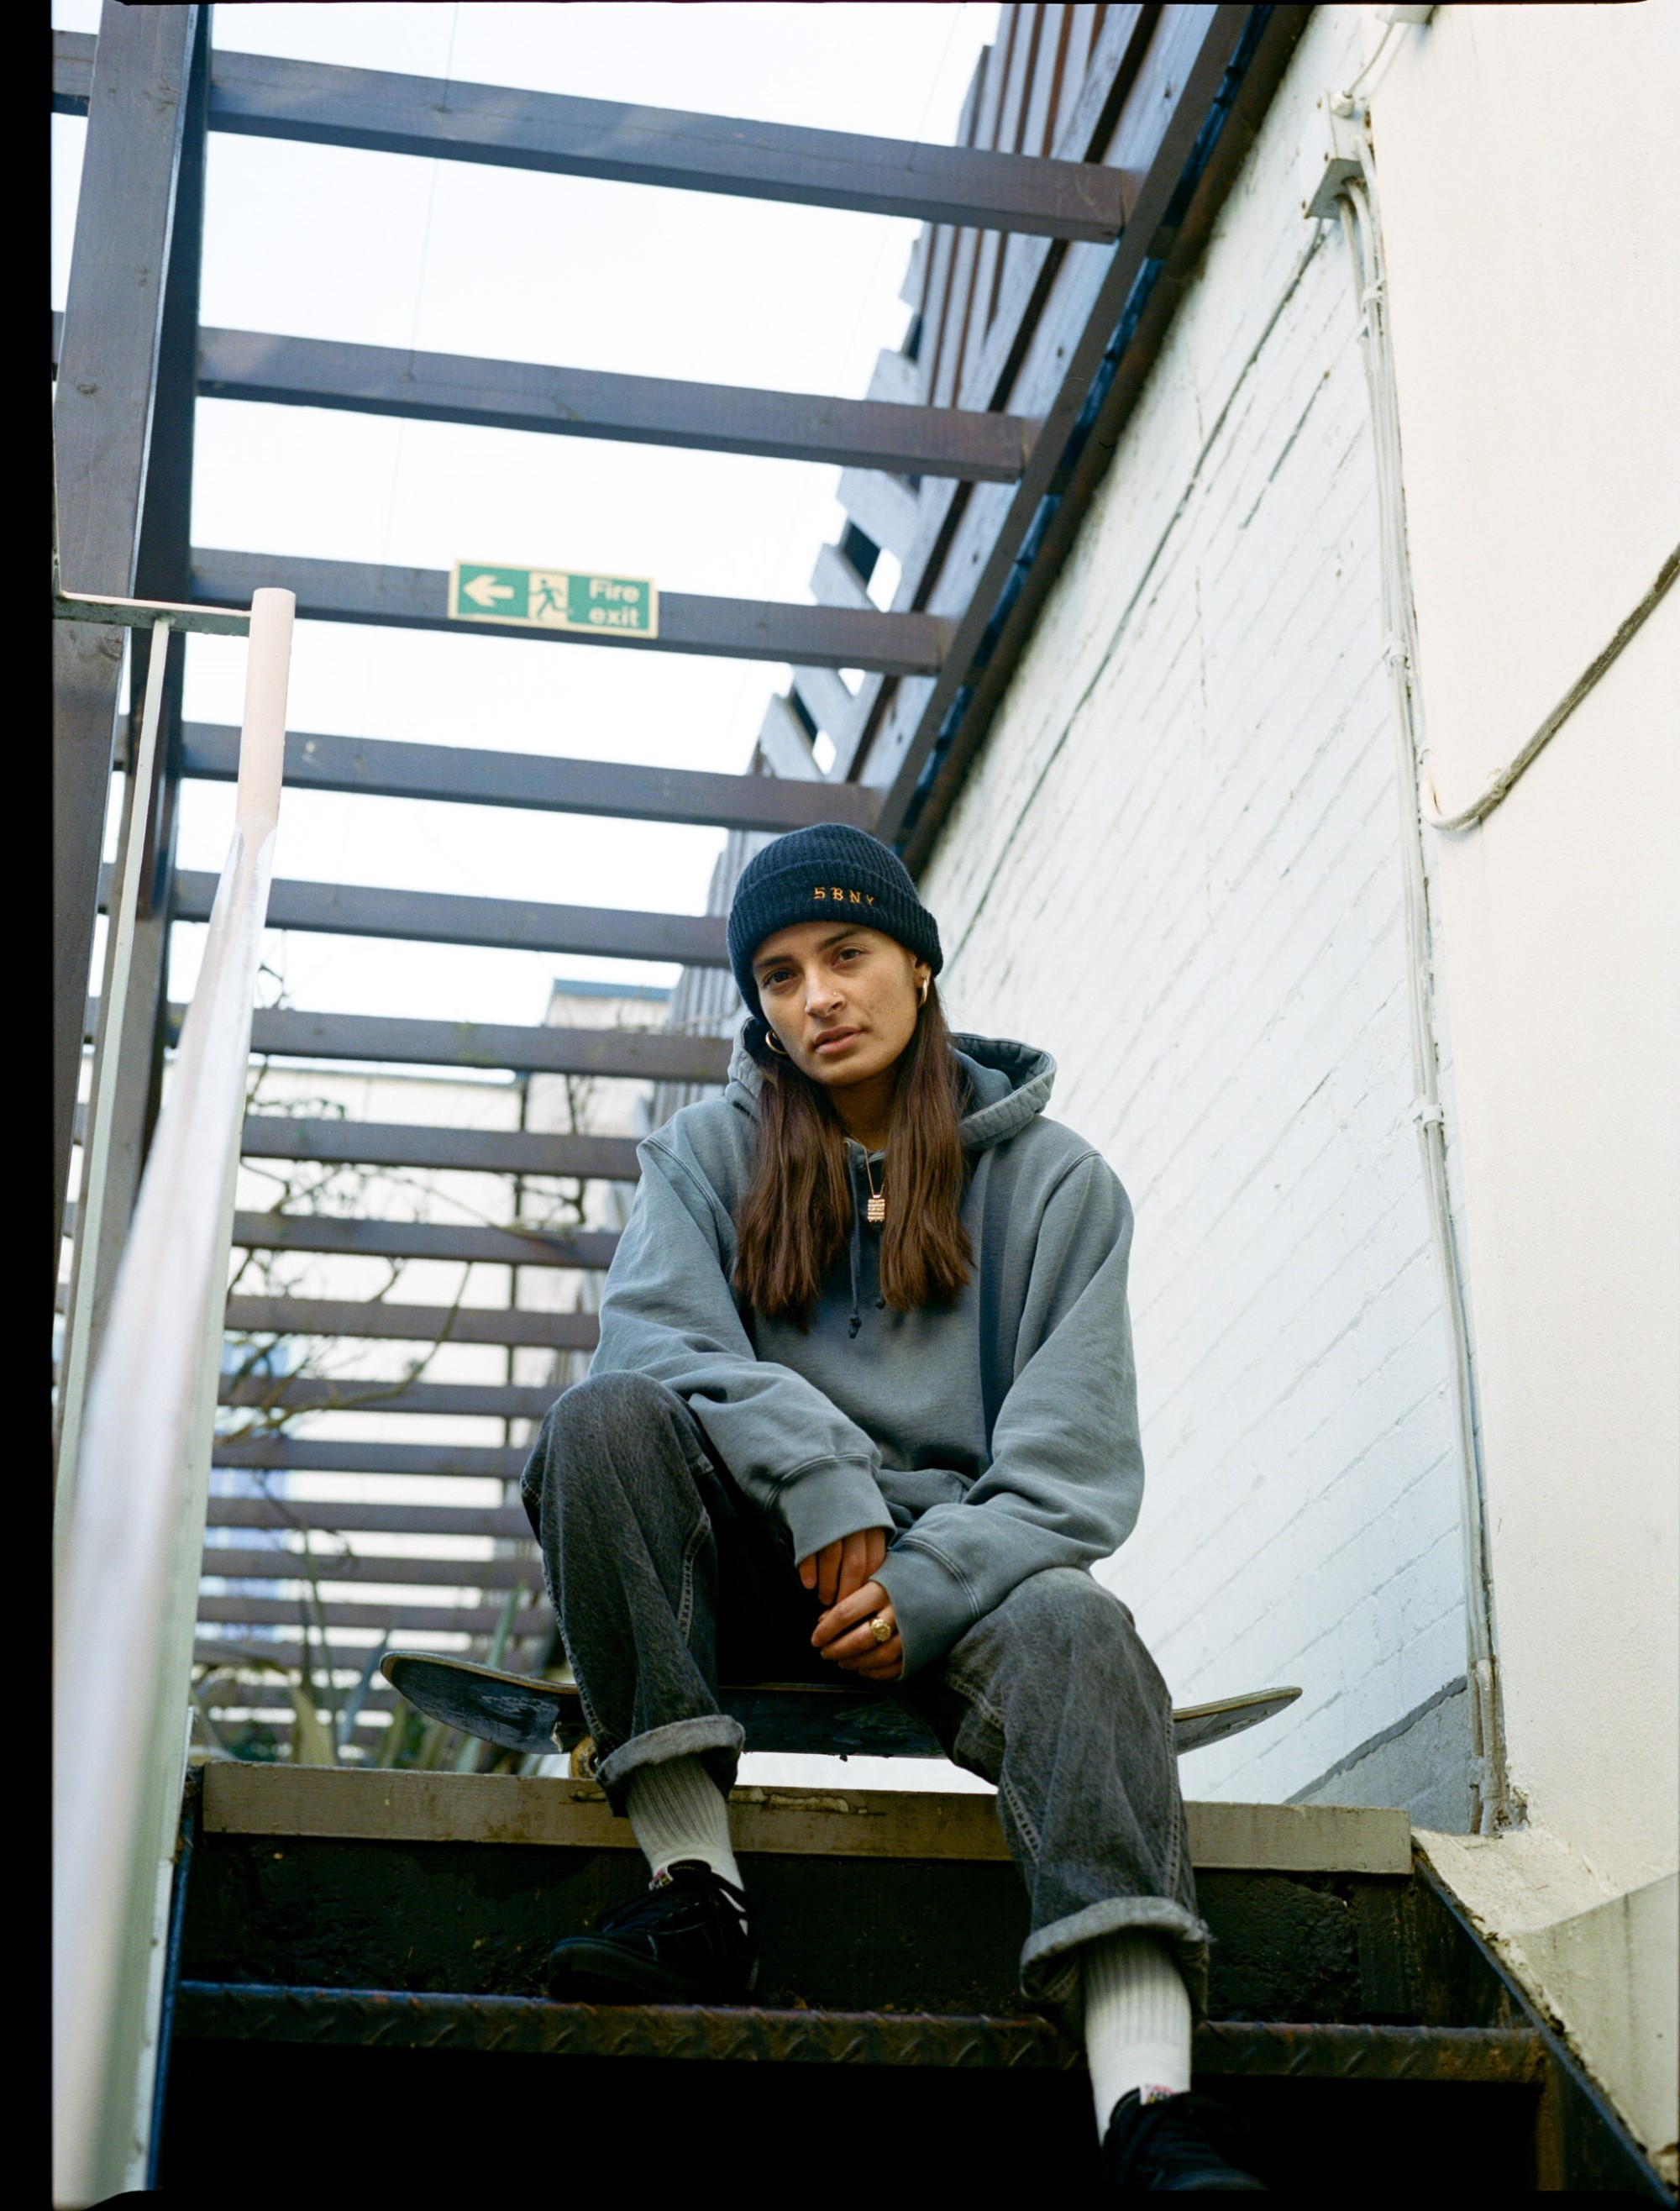 Kavita Babbar, female skateboarder, photographer, producer, Indian British, photograph by Sam Elstub, she sits on skateboard at the top of steps